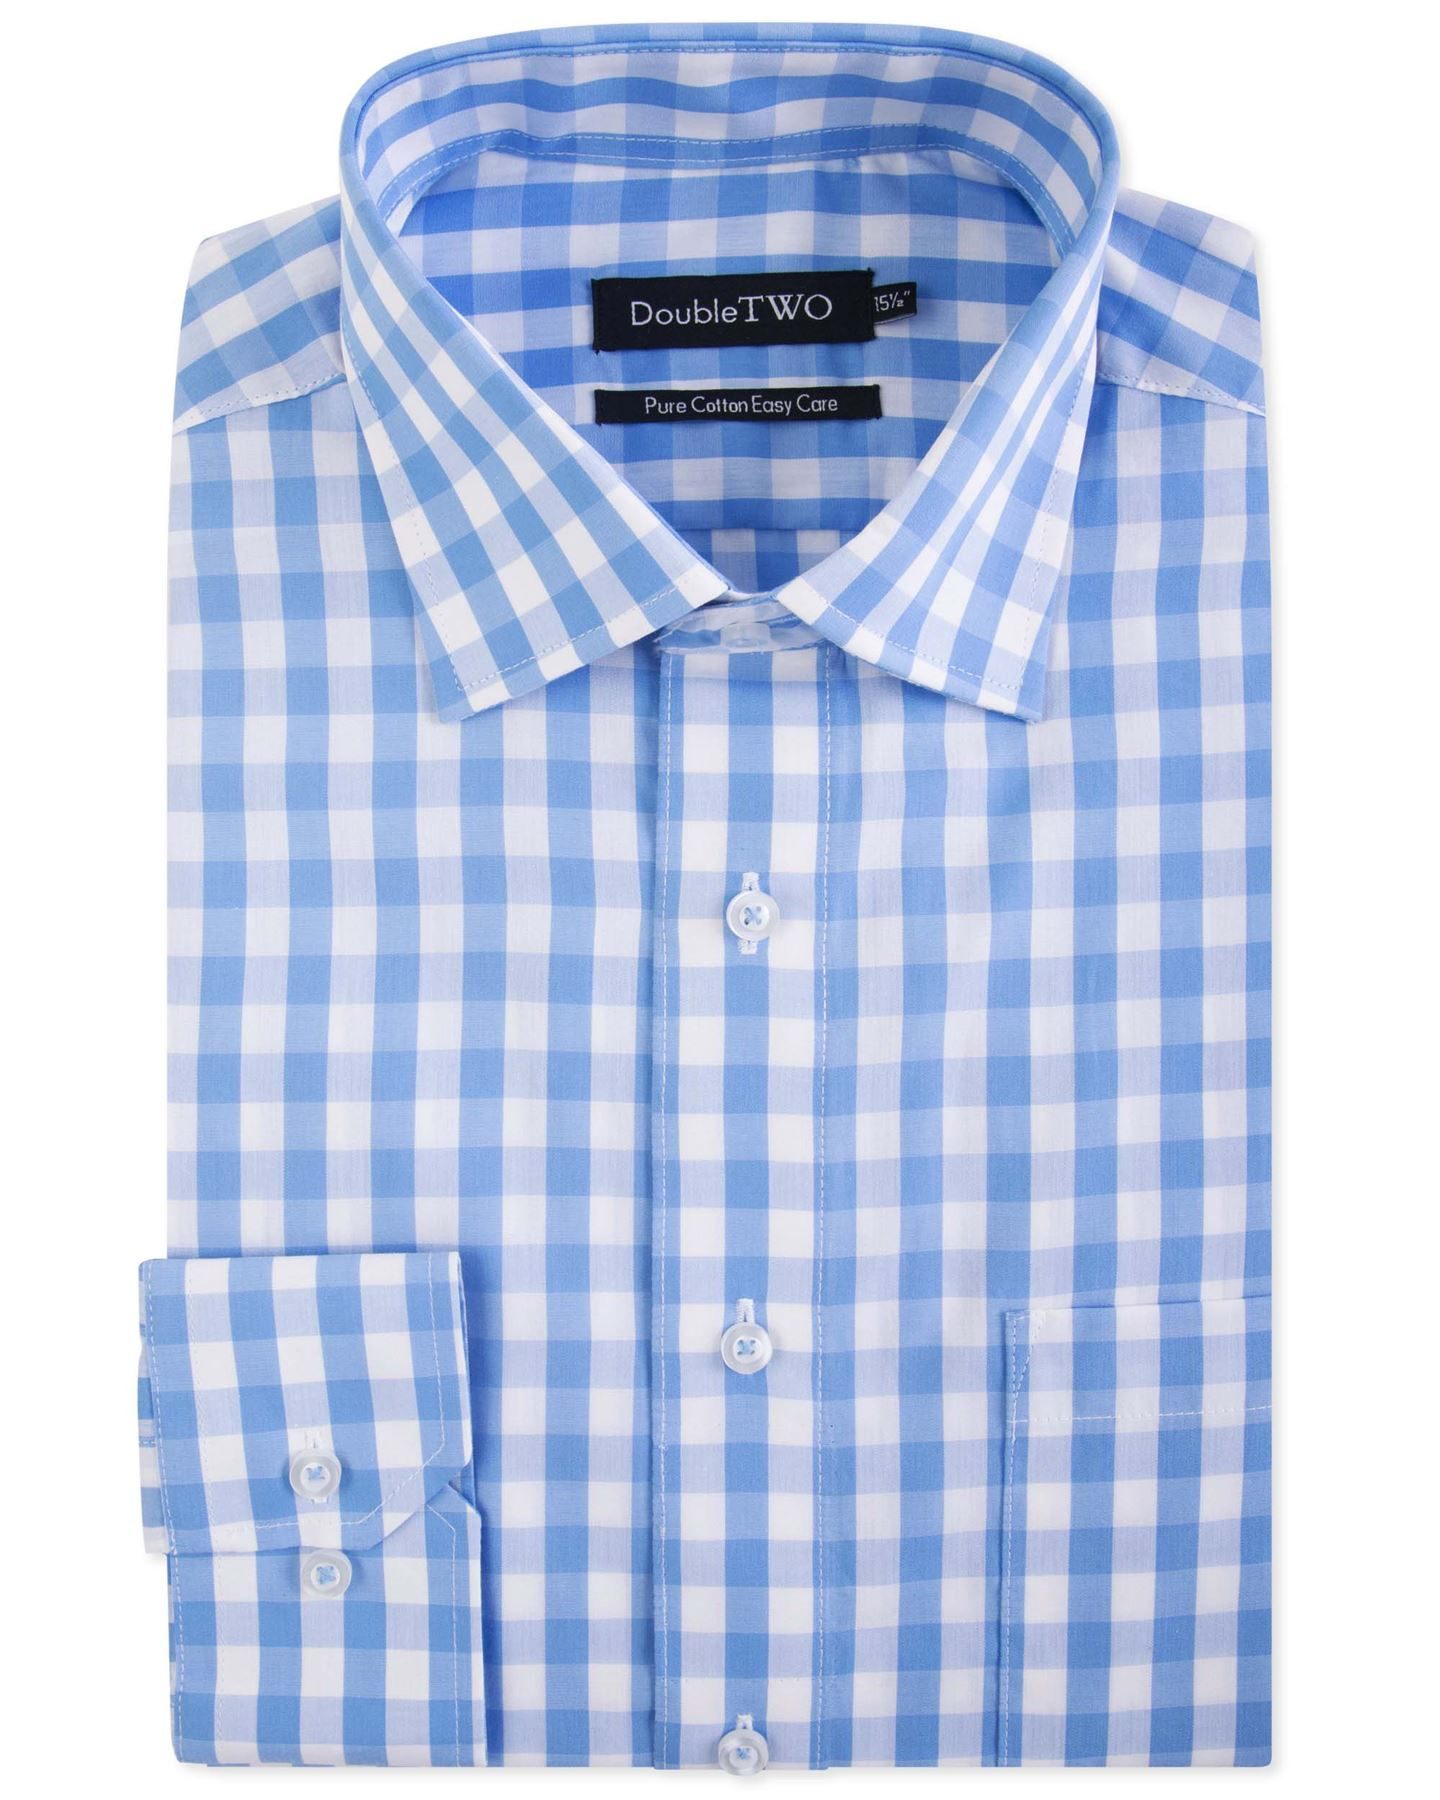 Double-Two-Mens-Cotton-Easy-Care-LS-Shirts-AW18-Collar-15-23-034-Multiple-Options thumbnail 12